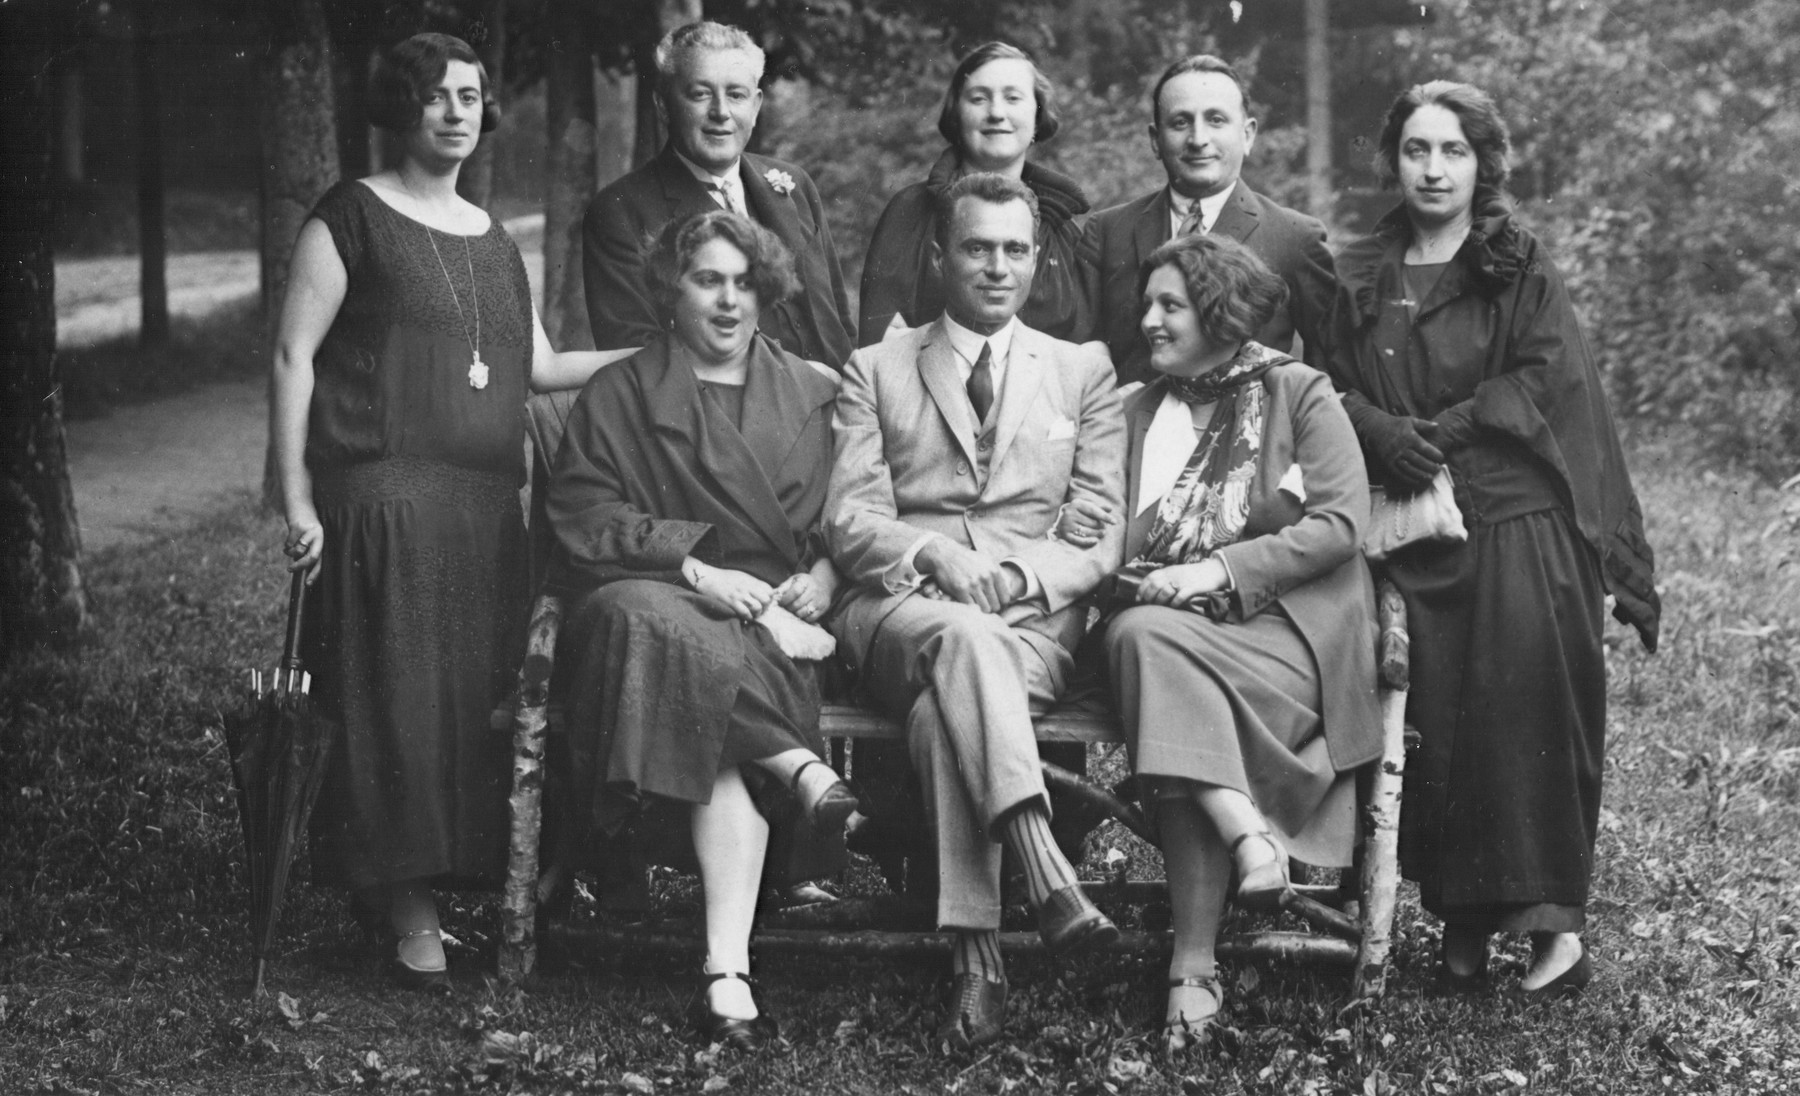 Slovak Jews pose for a group portrait while on vacation in Marienbad.  Pictured standing in the center is Lili Koenig's sister, Zelma and beneath her is her husband, Marton Vecsey.